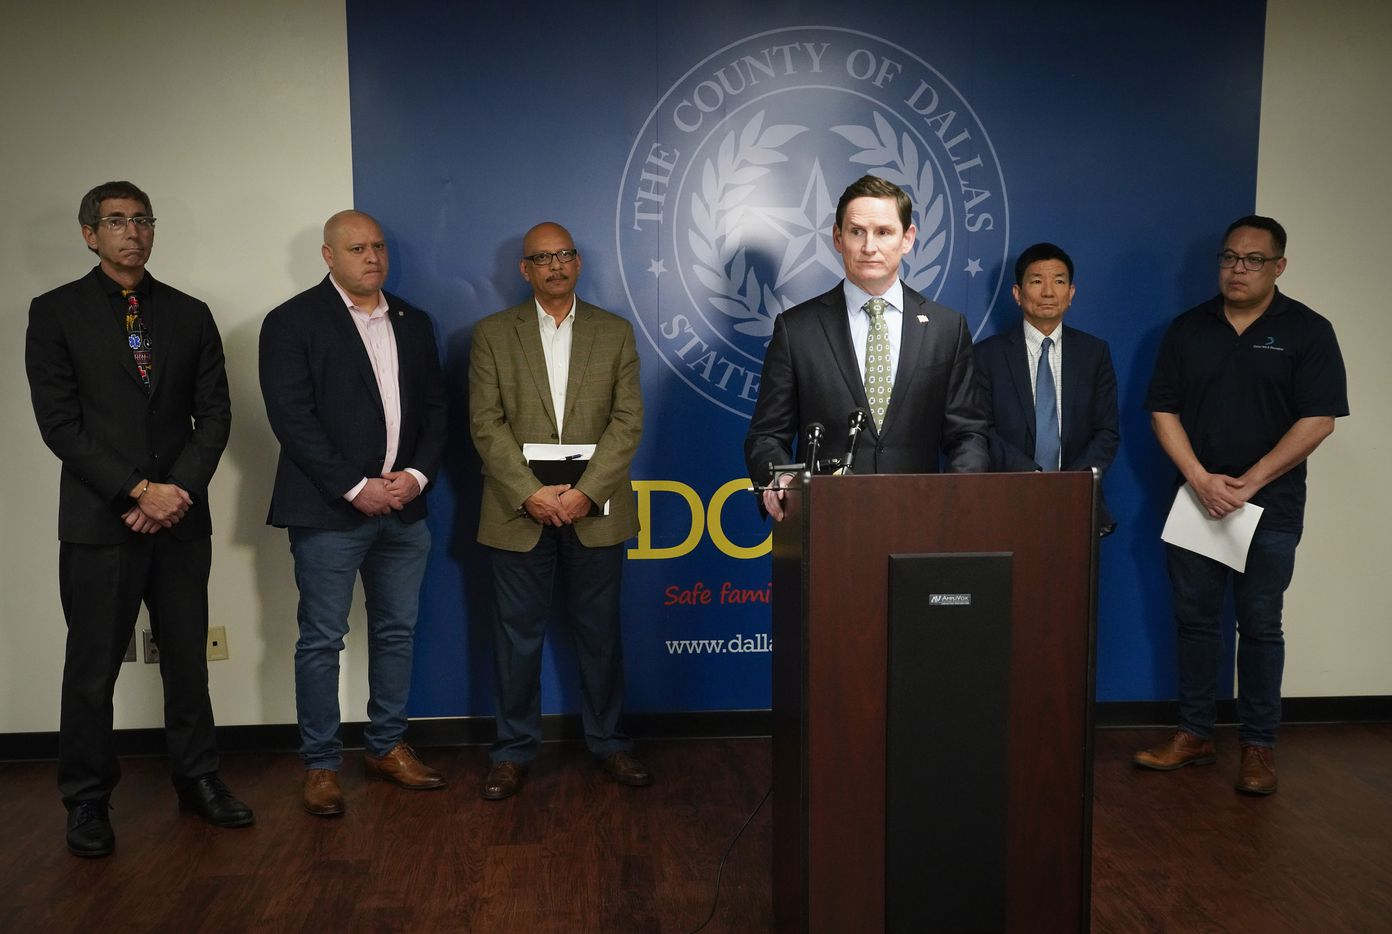 Dallas County Judge Clay Jenkins announces that a local state of disaster for public health emergency has been declared in the county, due to more cases of the new coronavirus, late Thursday, March 12. 2020, in Dallas. Behind him, from left, are Dr. Marshal Isaacs, Dallas Mayor Pro Tem Adam Medrano, Rocky Vaz, City of Dallas Director of Emergency Management, Dr. Philip Huang, Director of Dallas County Health and Human Services, and Dallas city council member Omar Narvaez.